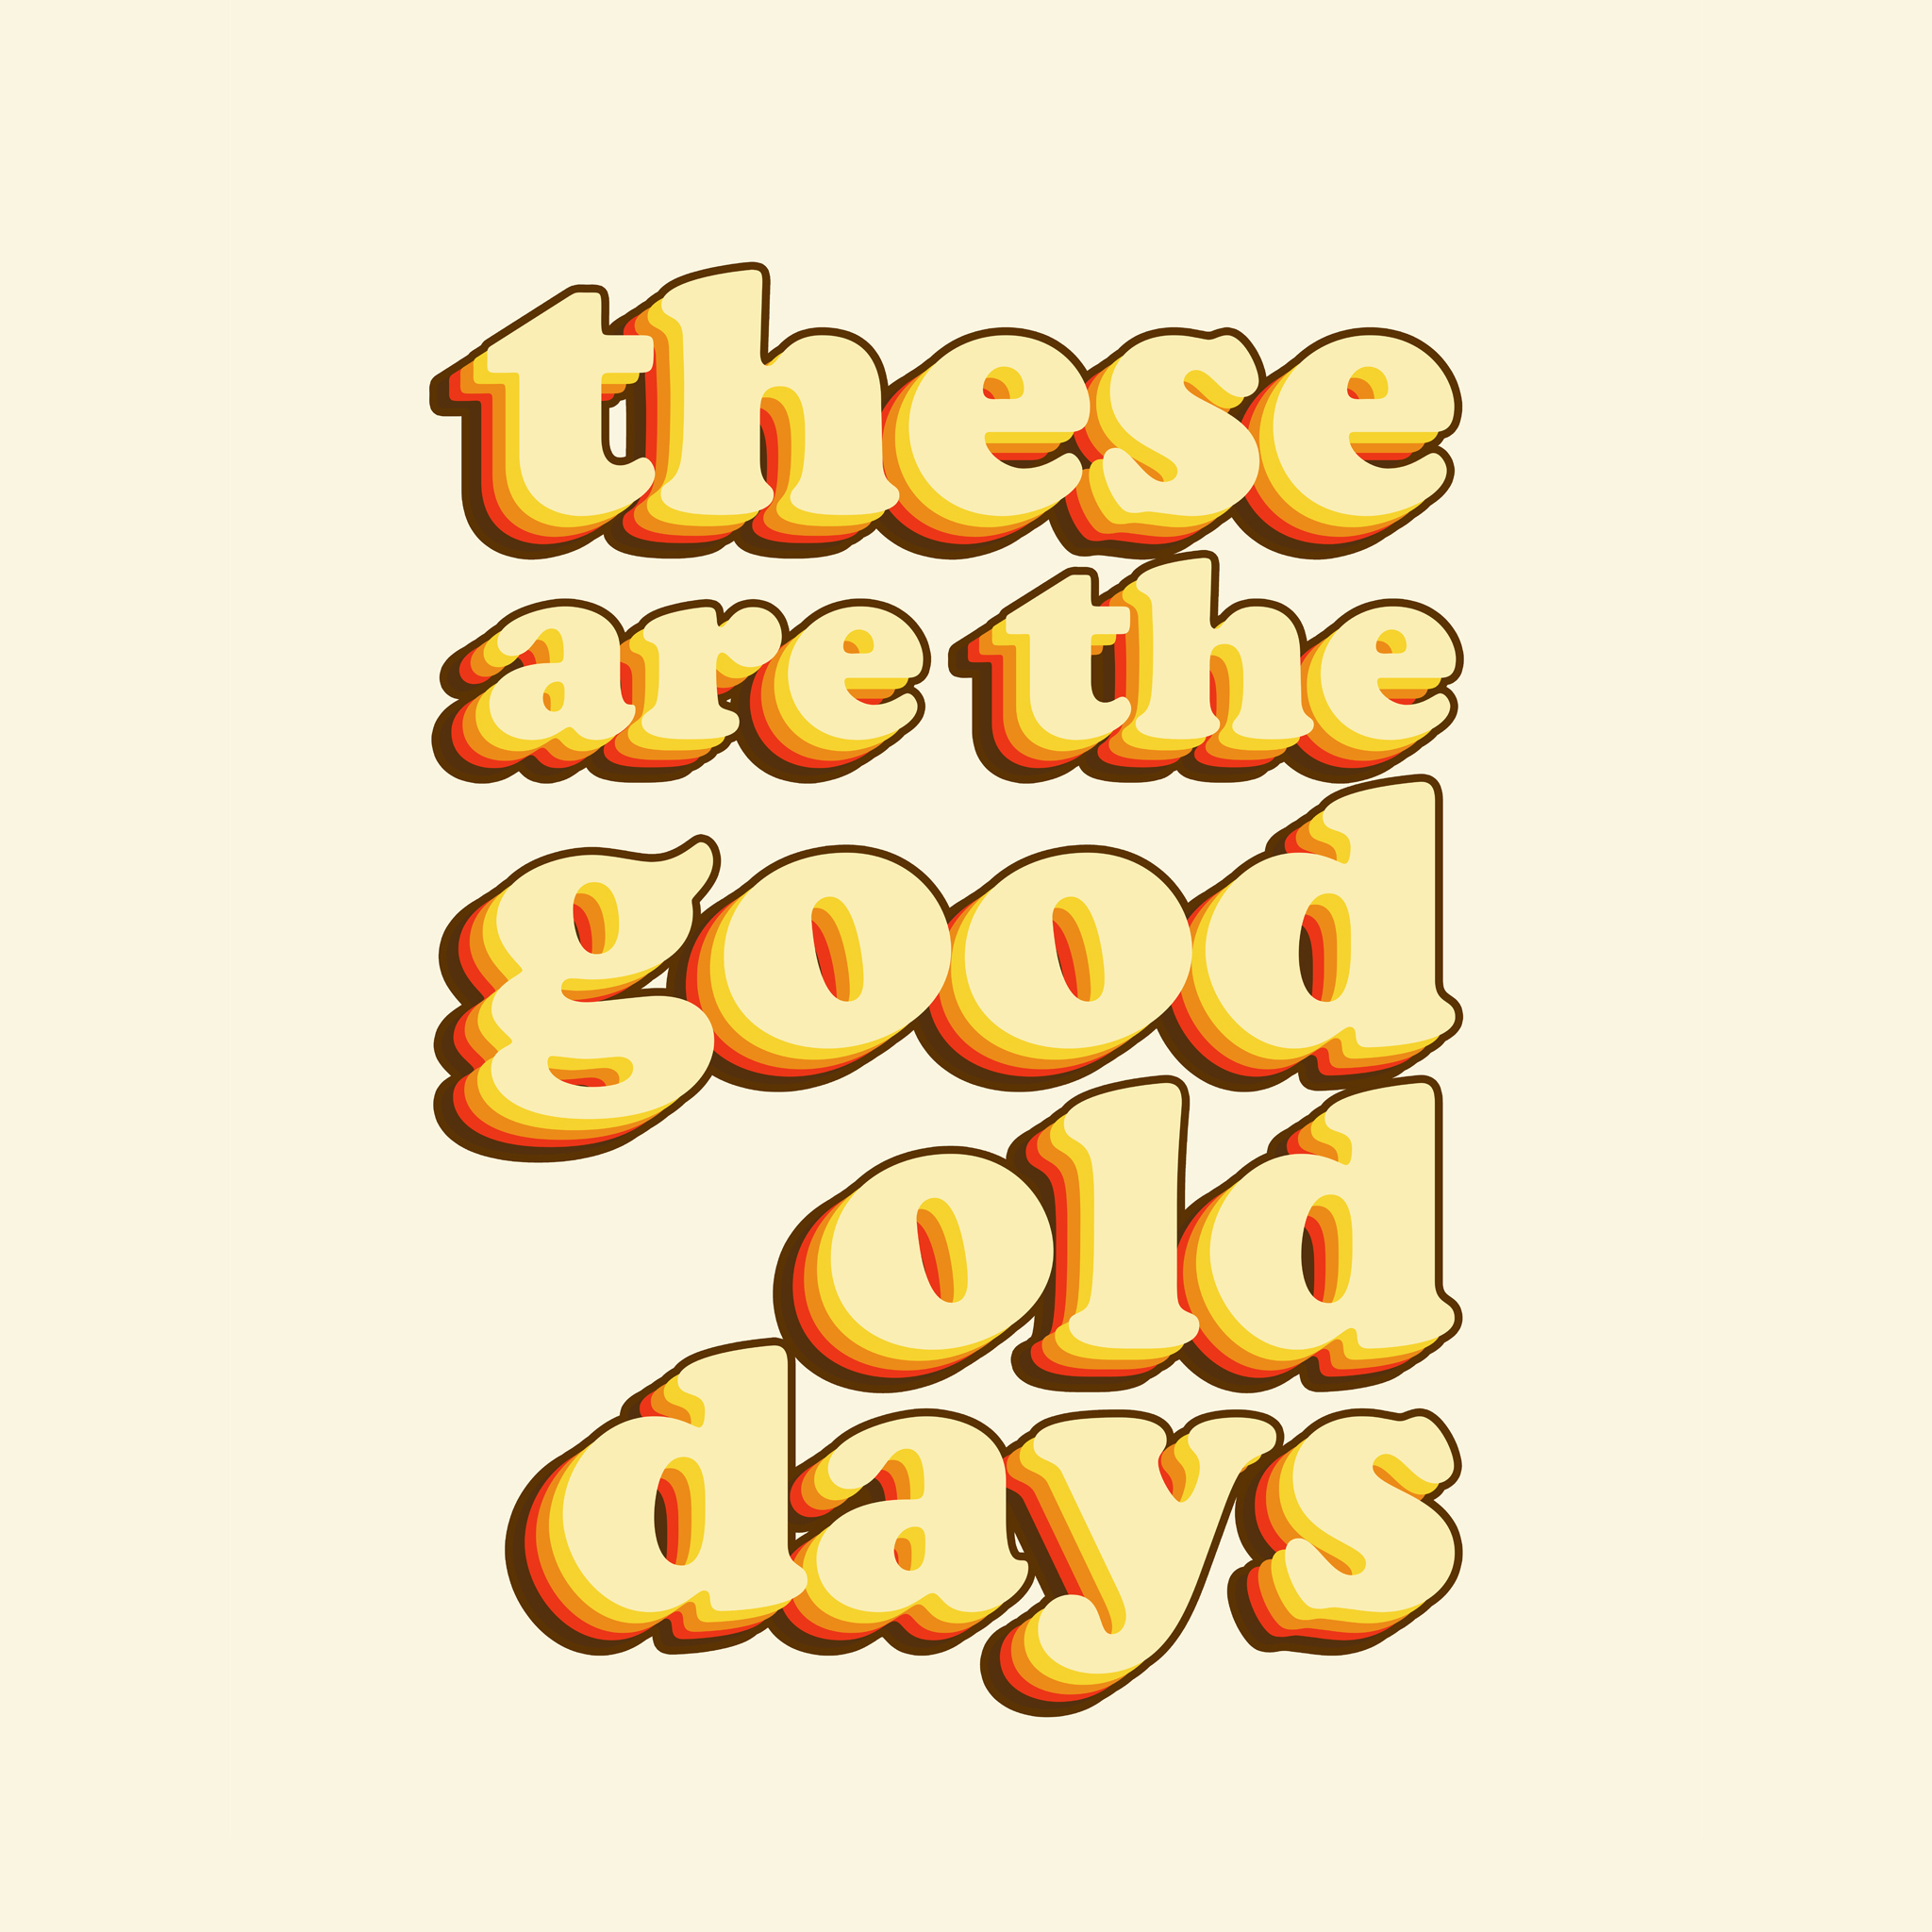 The Oopsy Daisy Co - These are the good old days